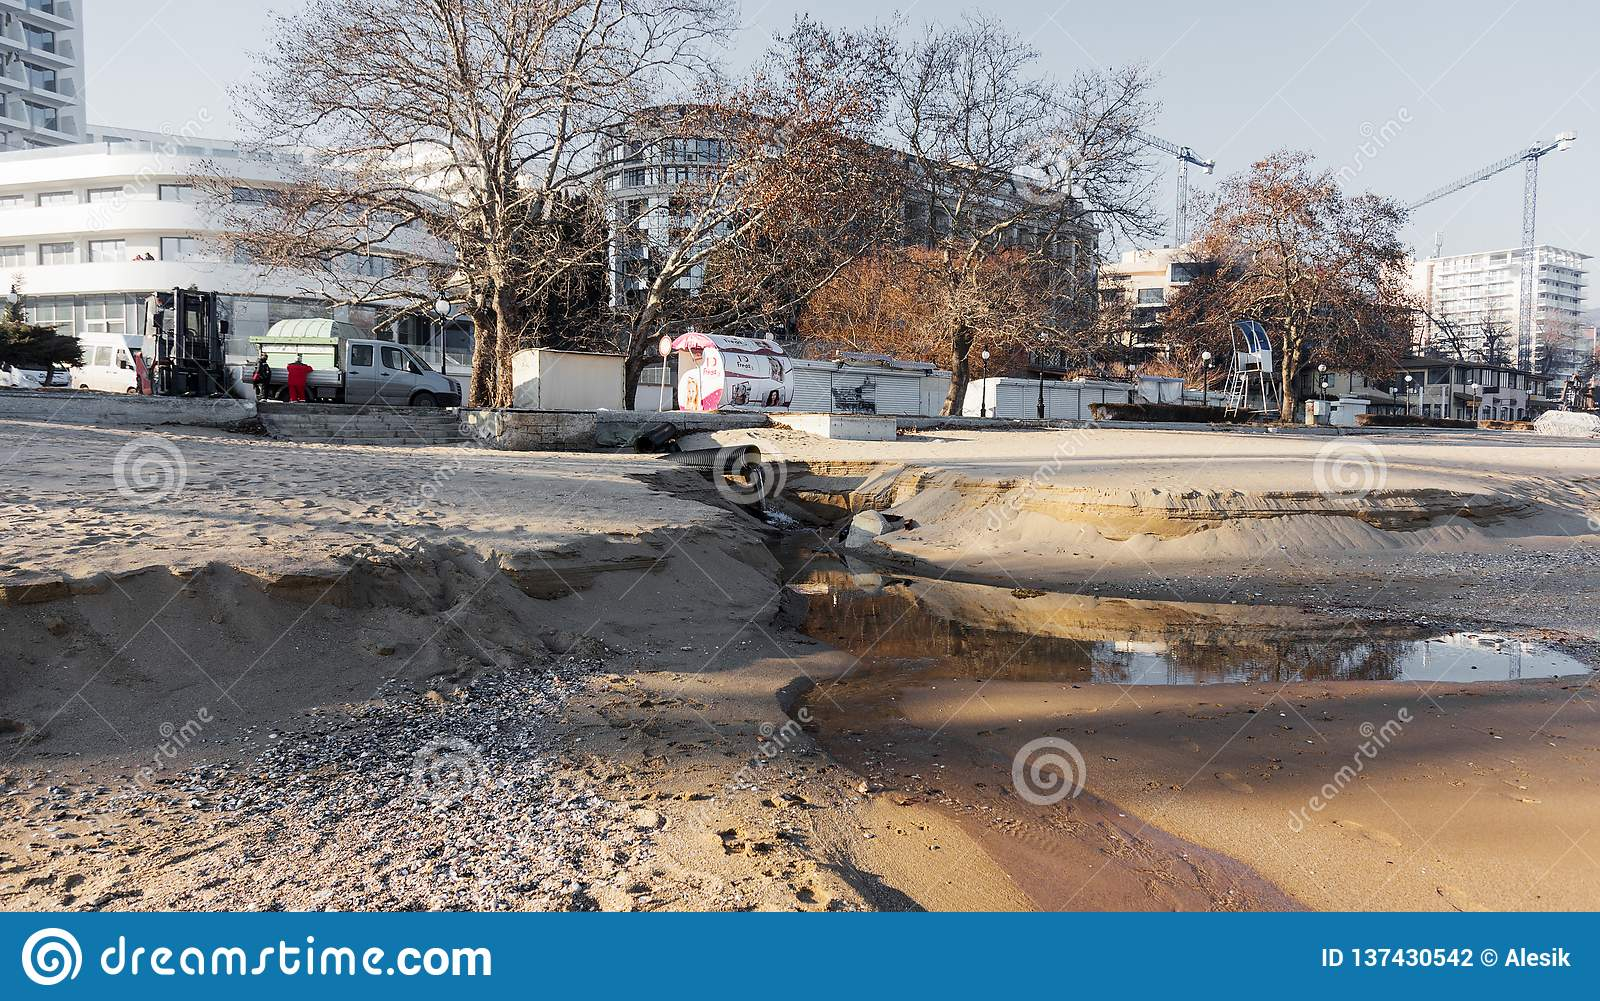 VARNA, BULGARIA - Jan 19, 2019: Industrial Waste Water, Pipeline